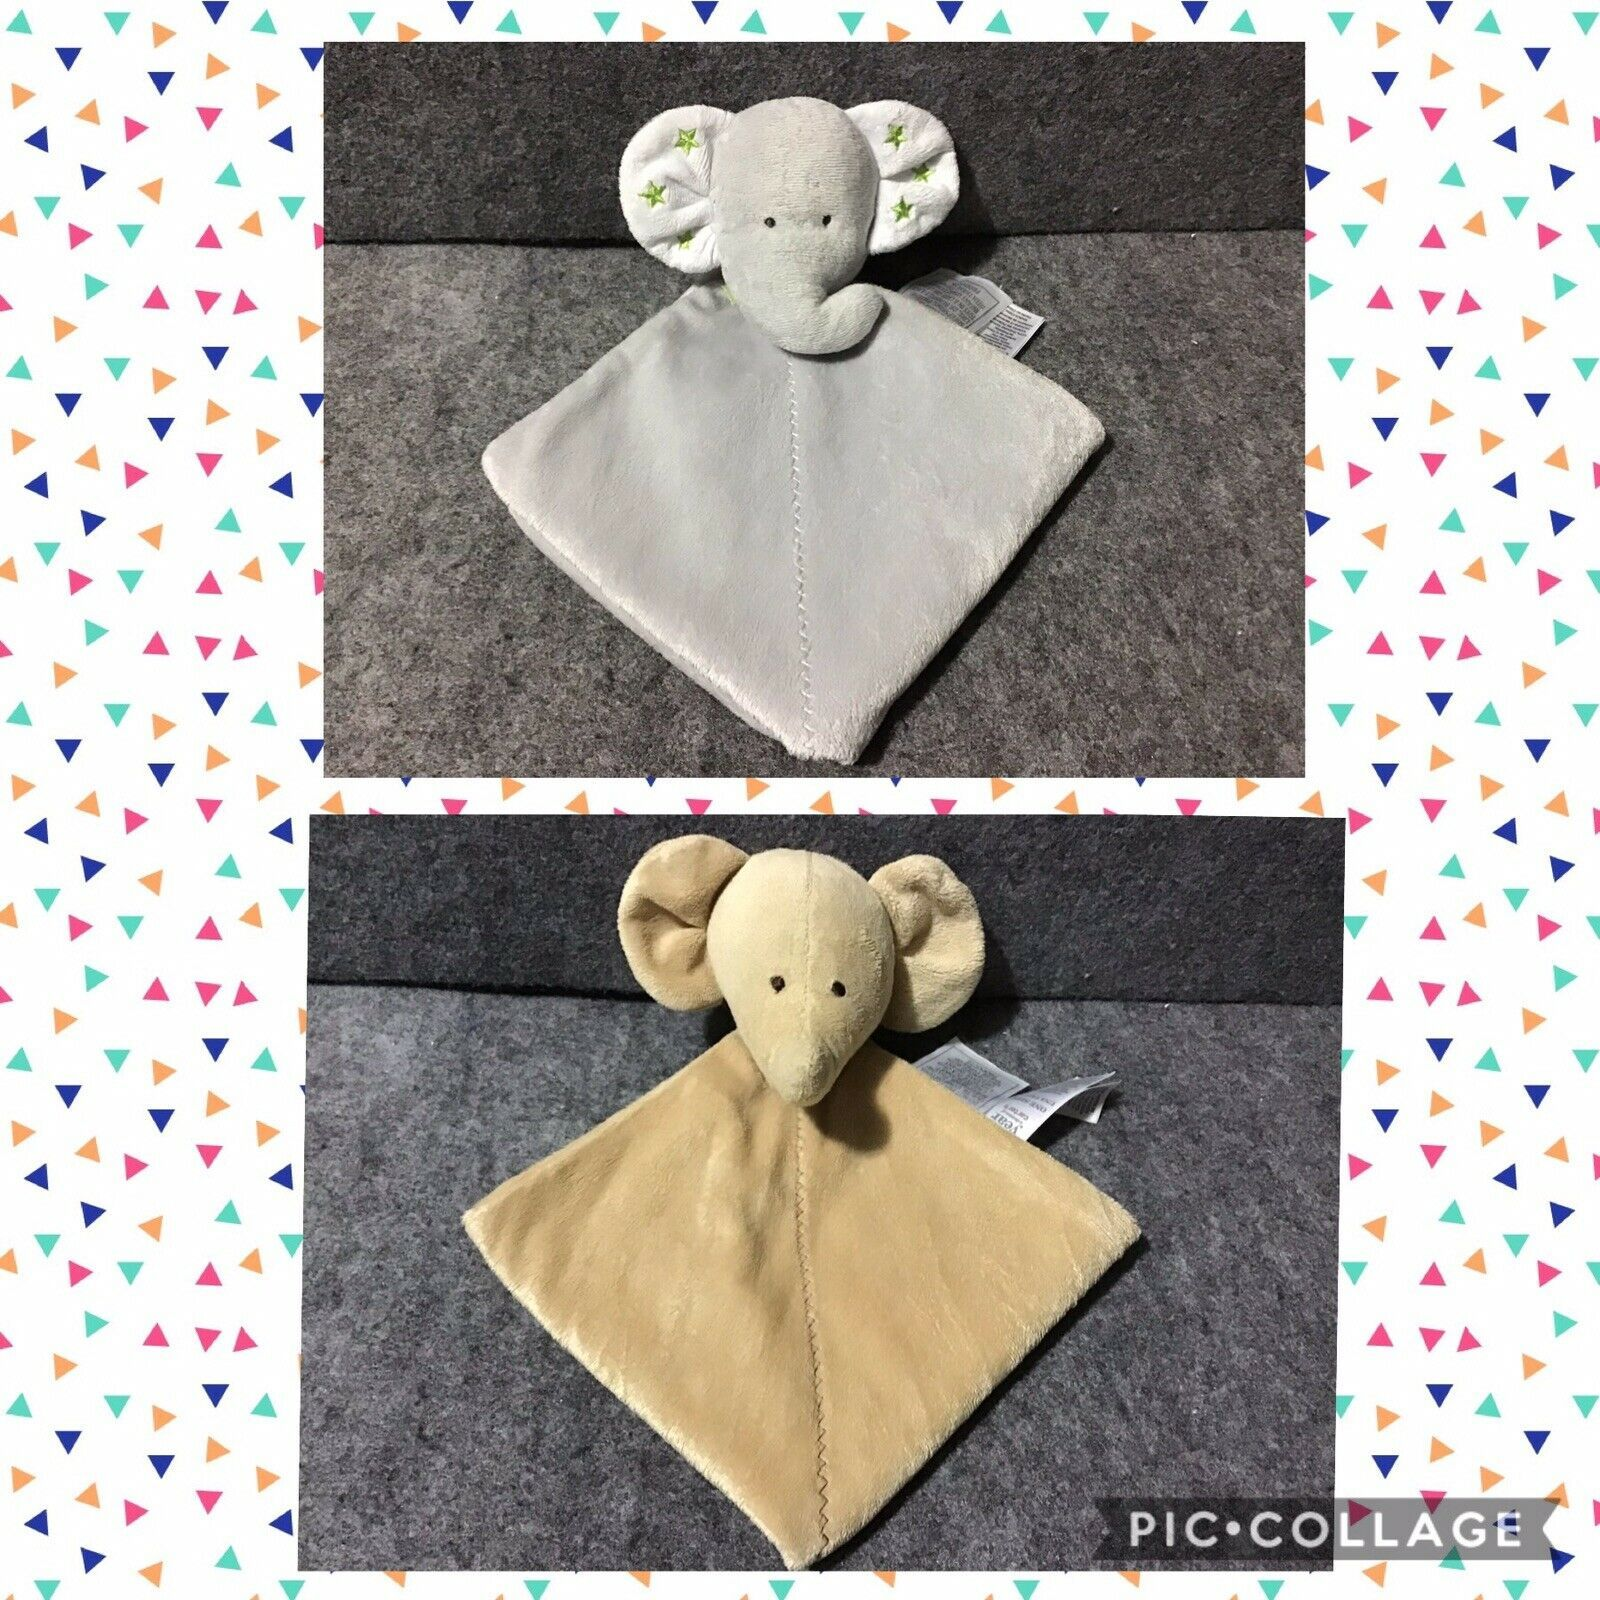 Little Miracles White Lamb holding baby Security Blanket Costco zigzag